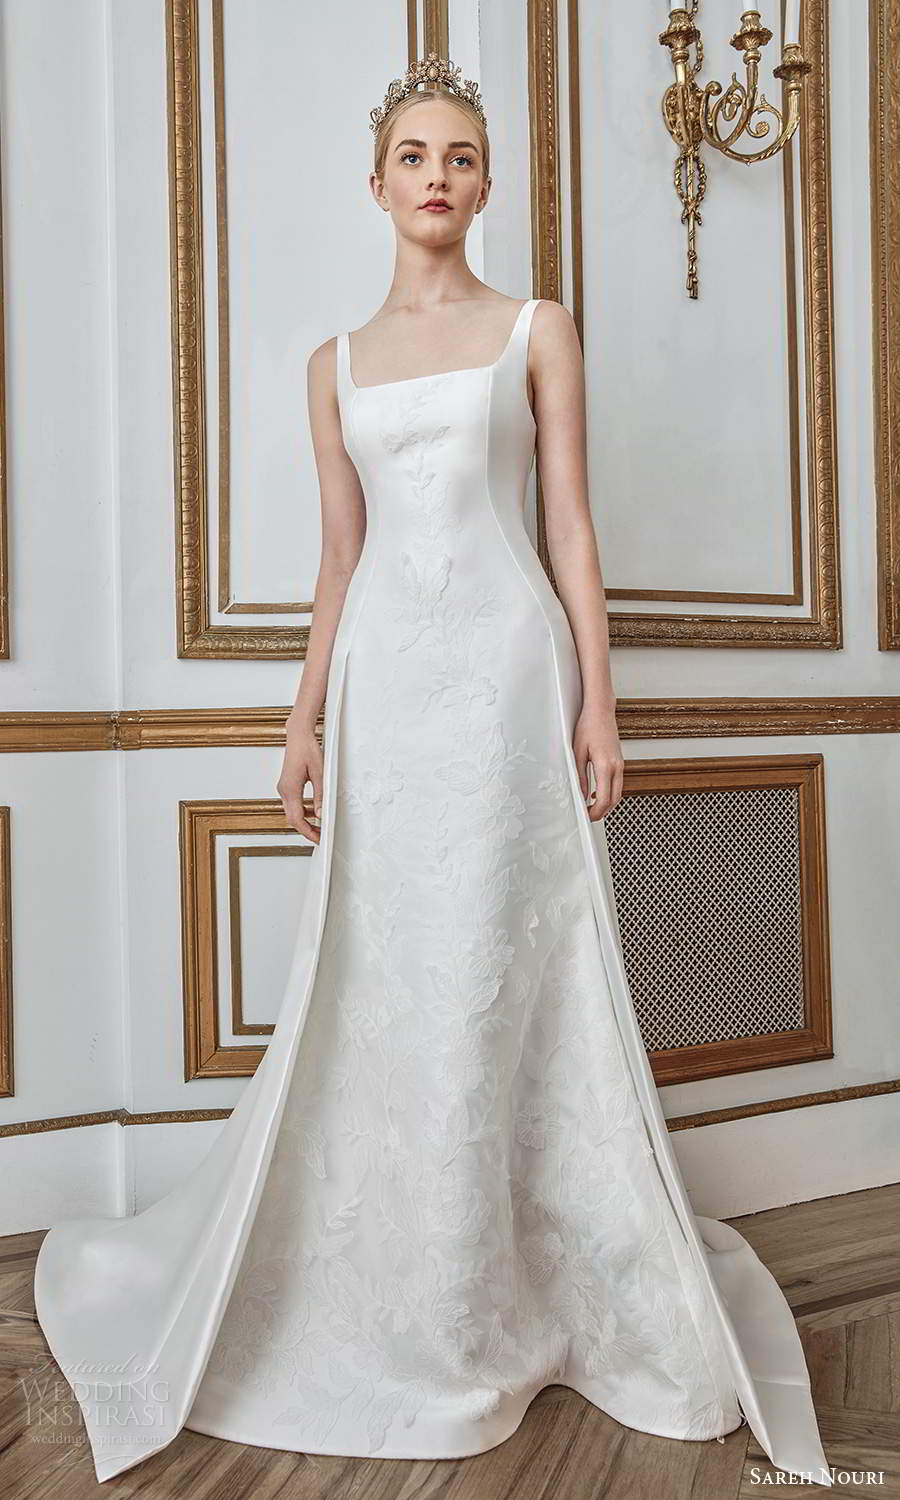 sareh nouri fall 2021 bridal sleeveless thick straps square neckline minimalist princess sheath wedding dress a line overskirt chapel train low back (9) fv